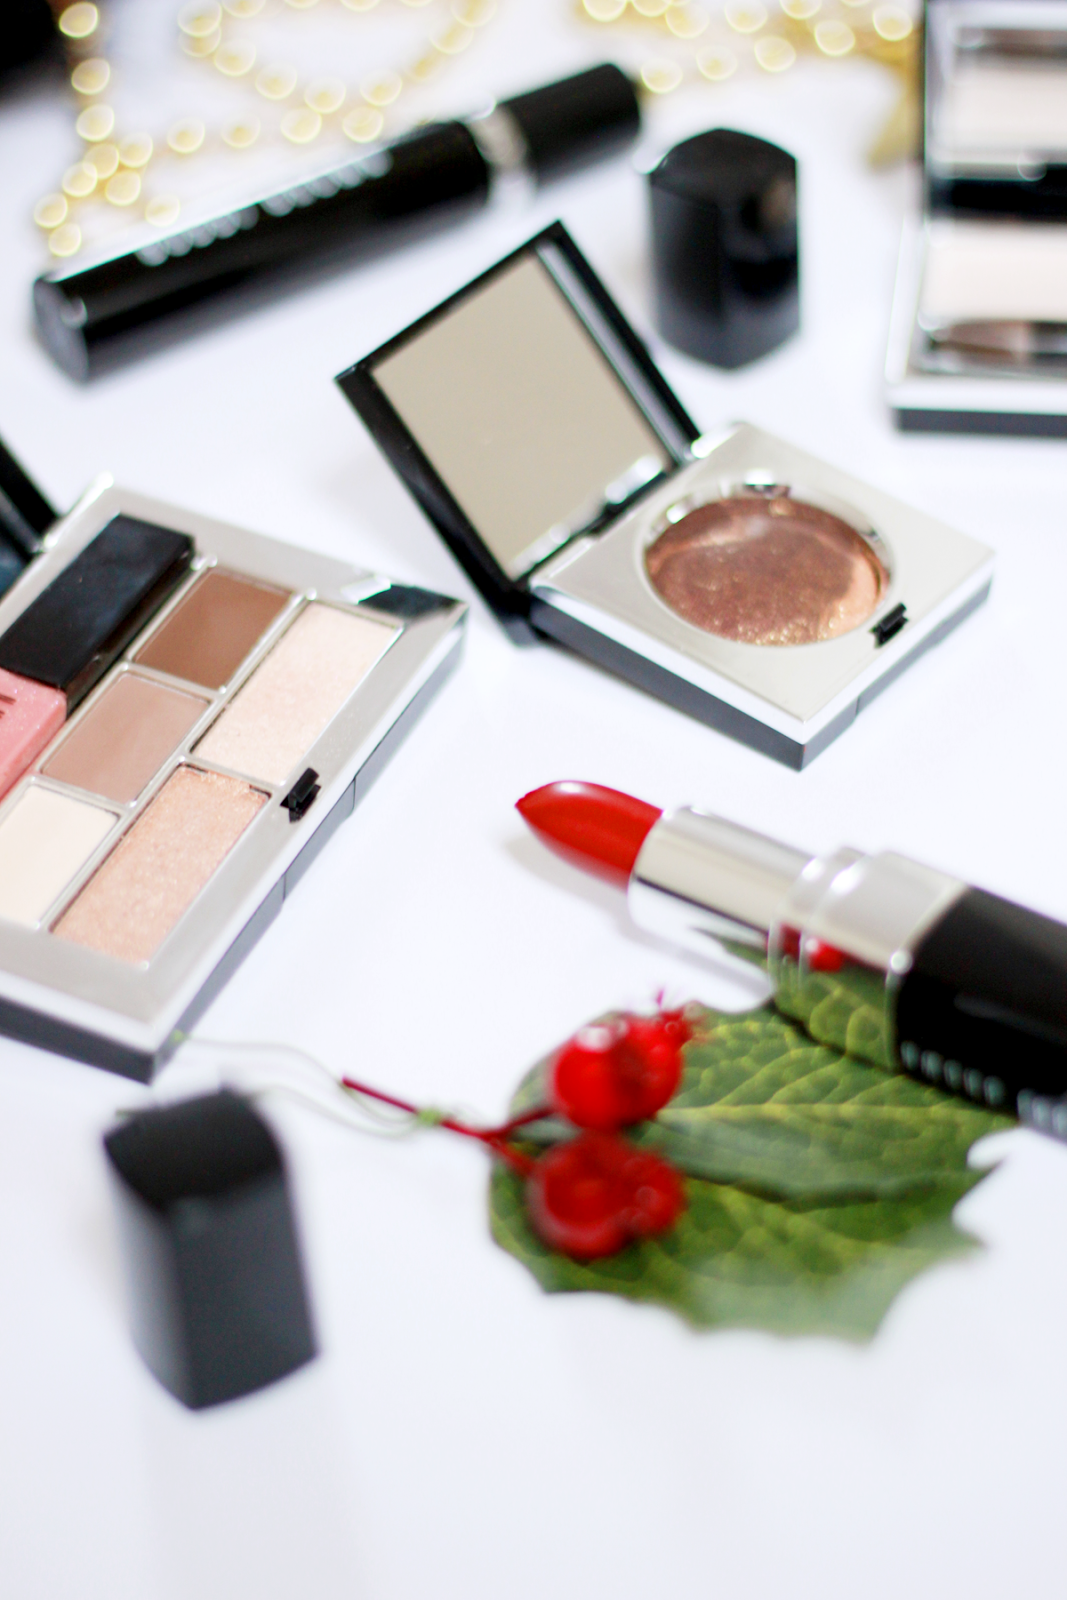 Bobbi Brown Holiday 2015 Collection